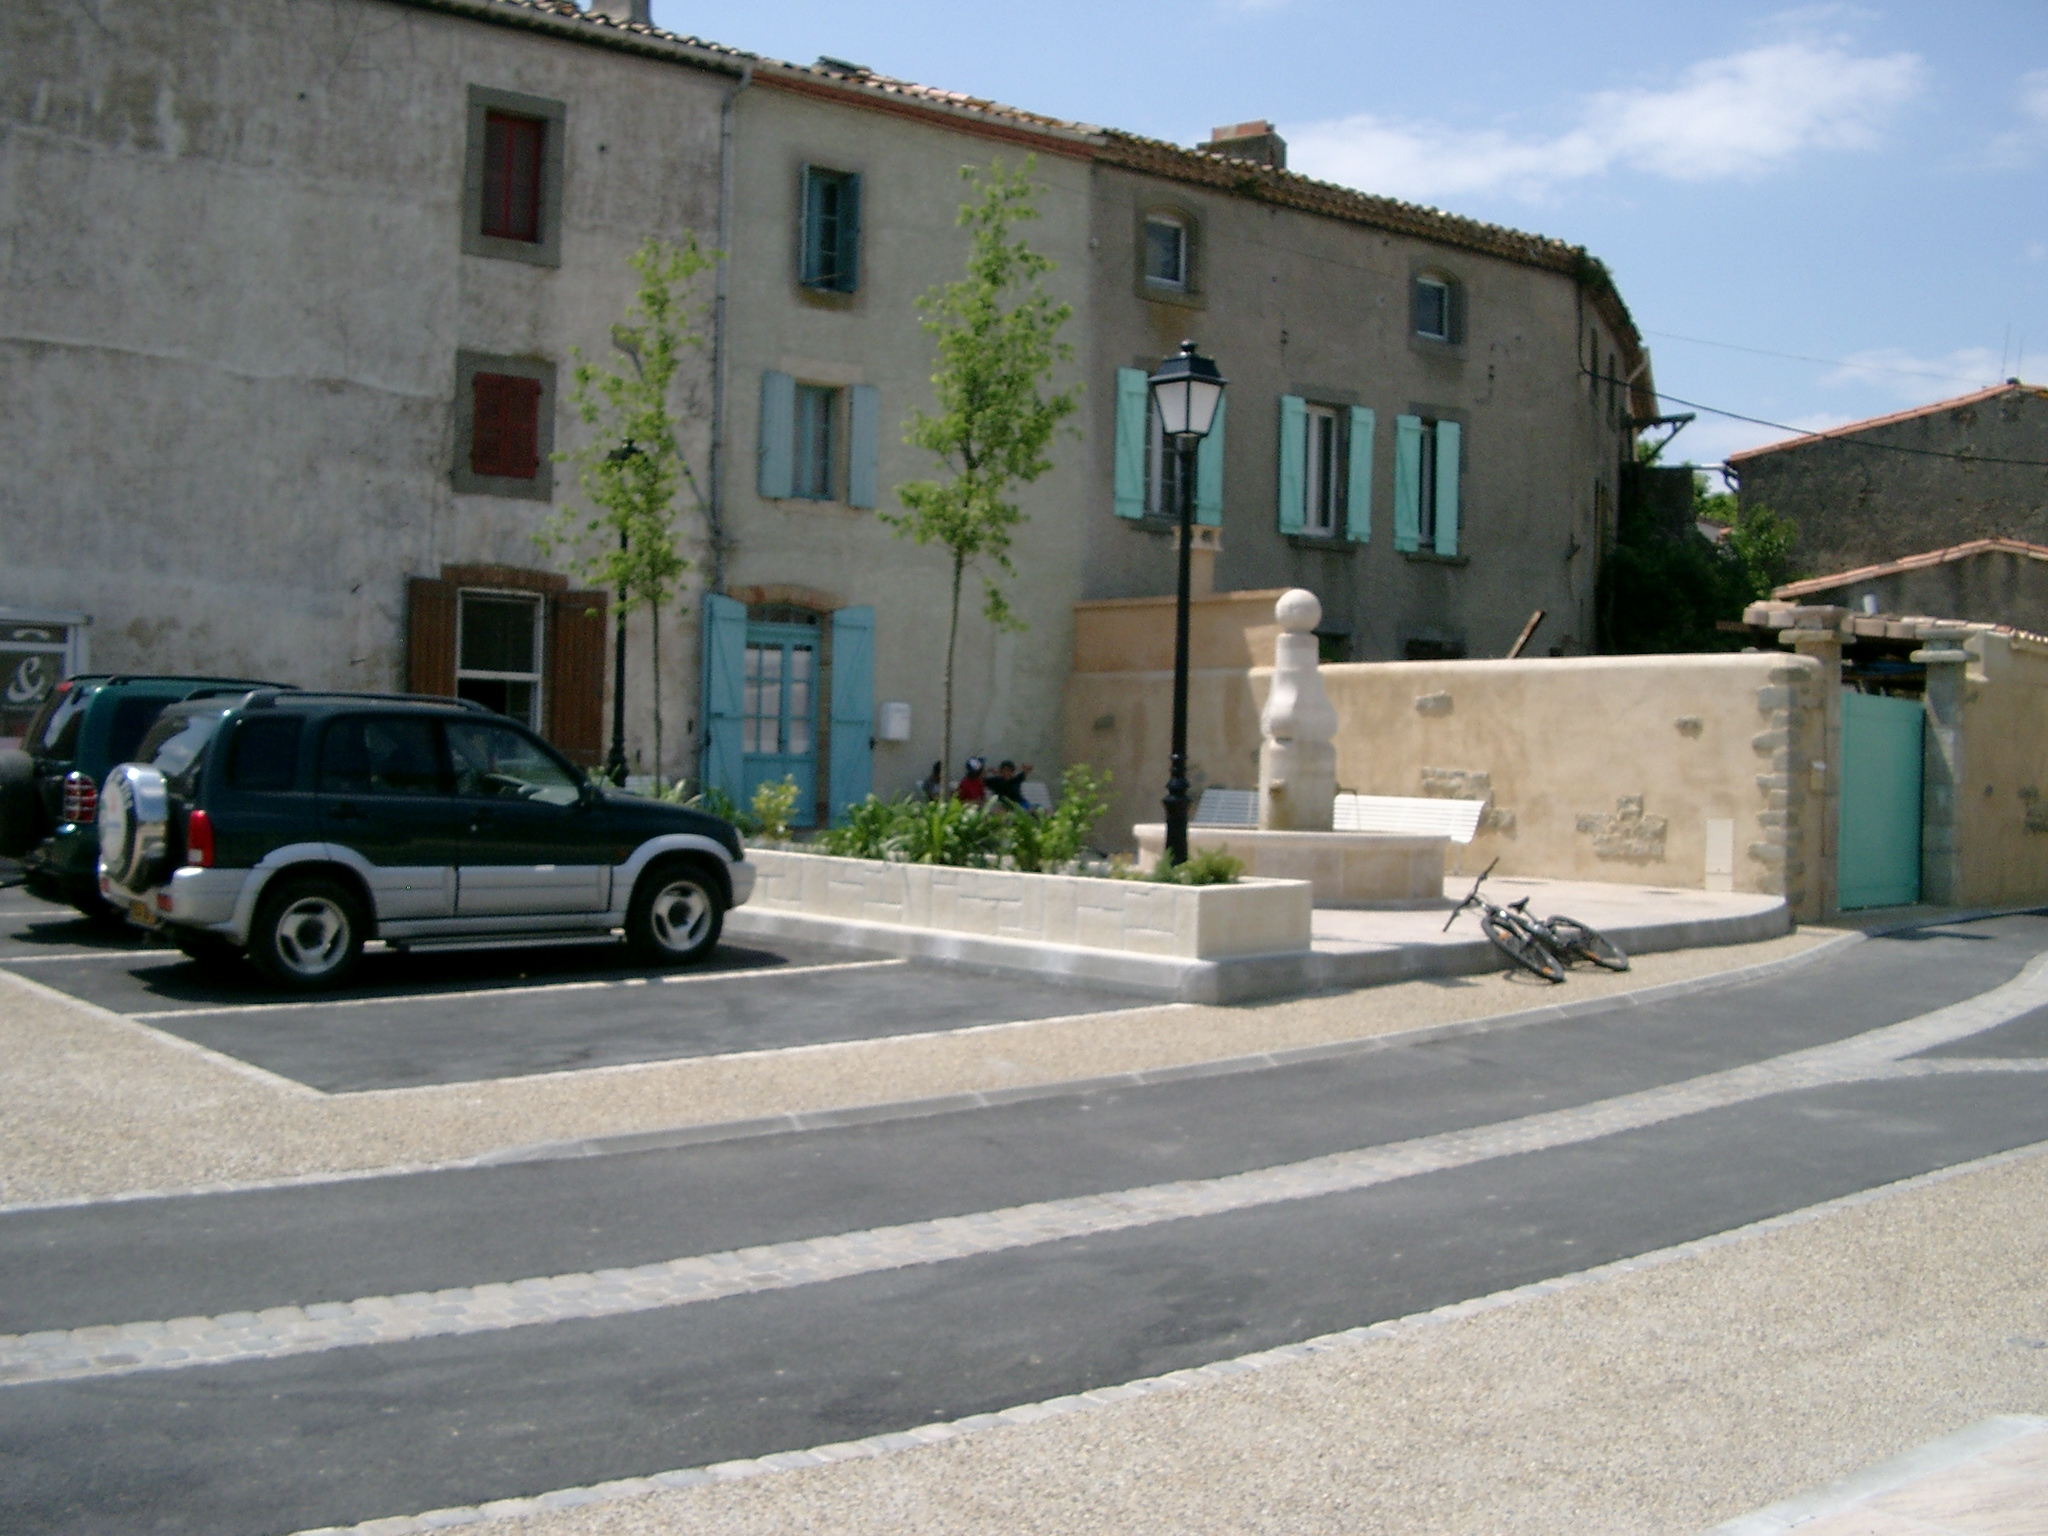 House for Sale in St. Eulalie, France